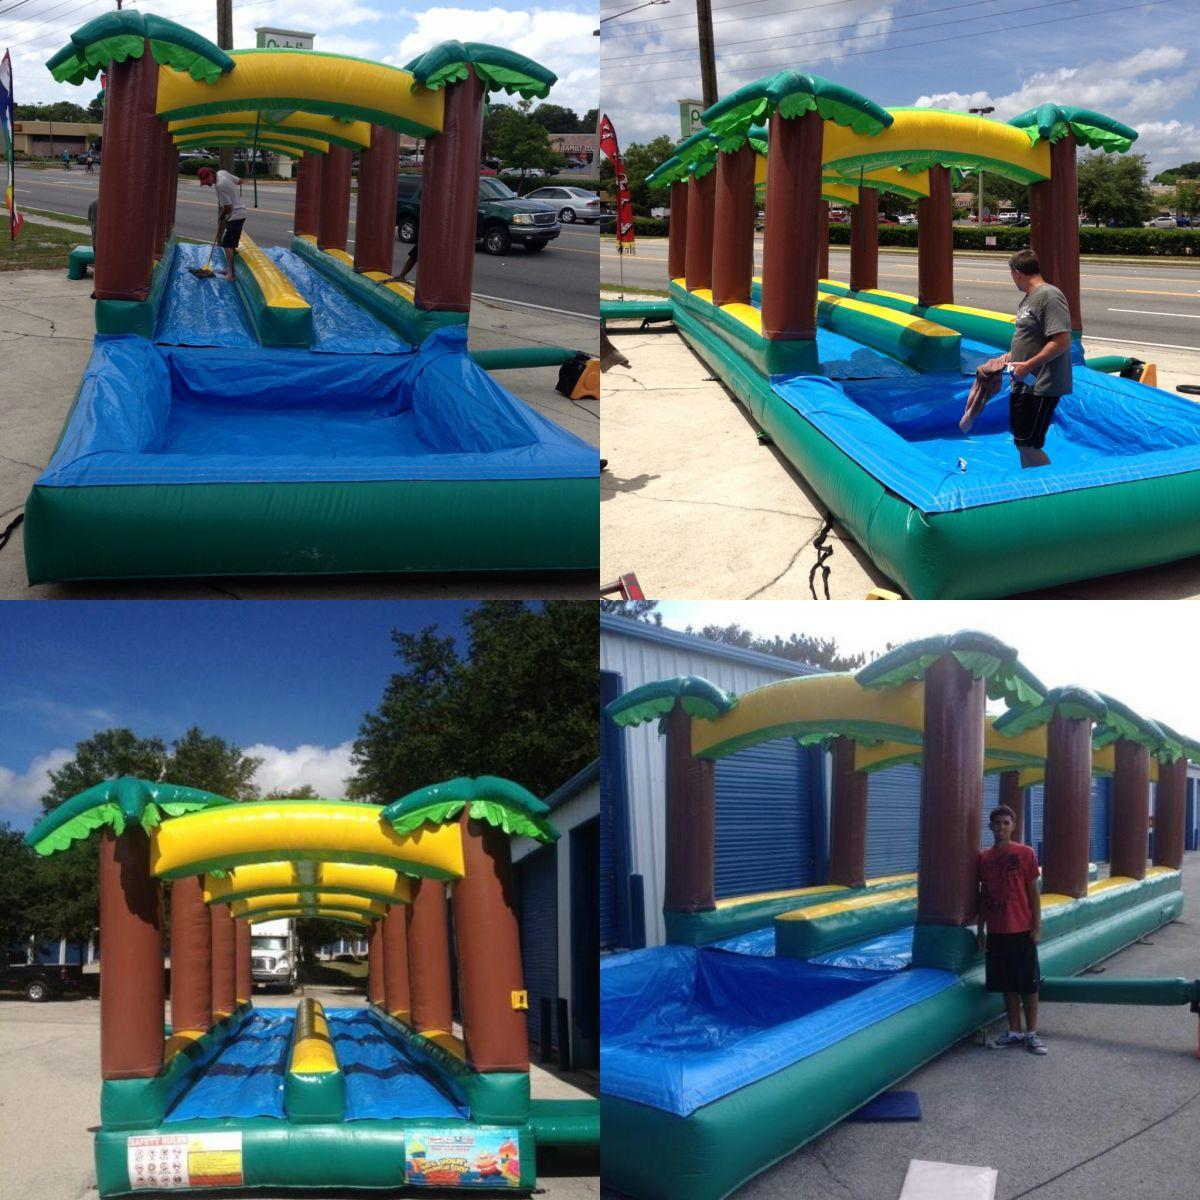 Inflatable Slide Rental Jacksonville Fl: 40FT Double Lane Slip N Slide